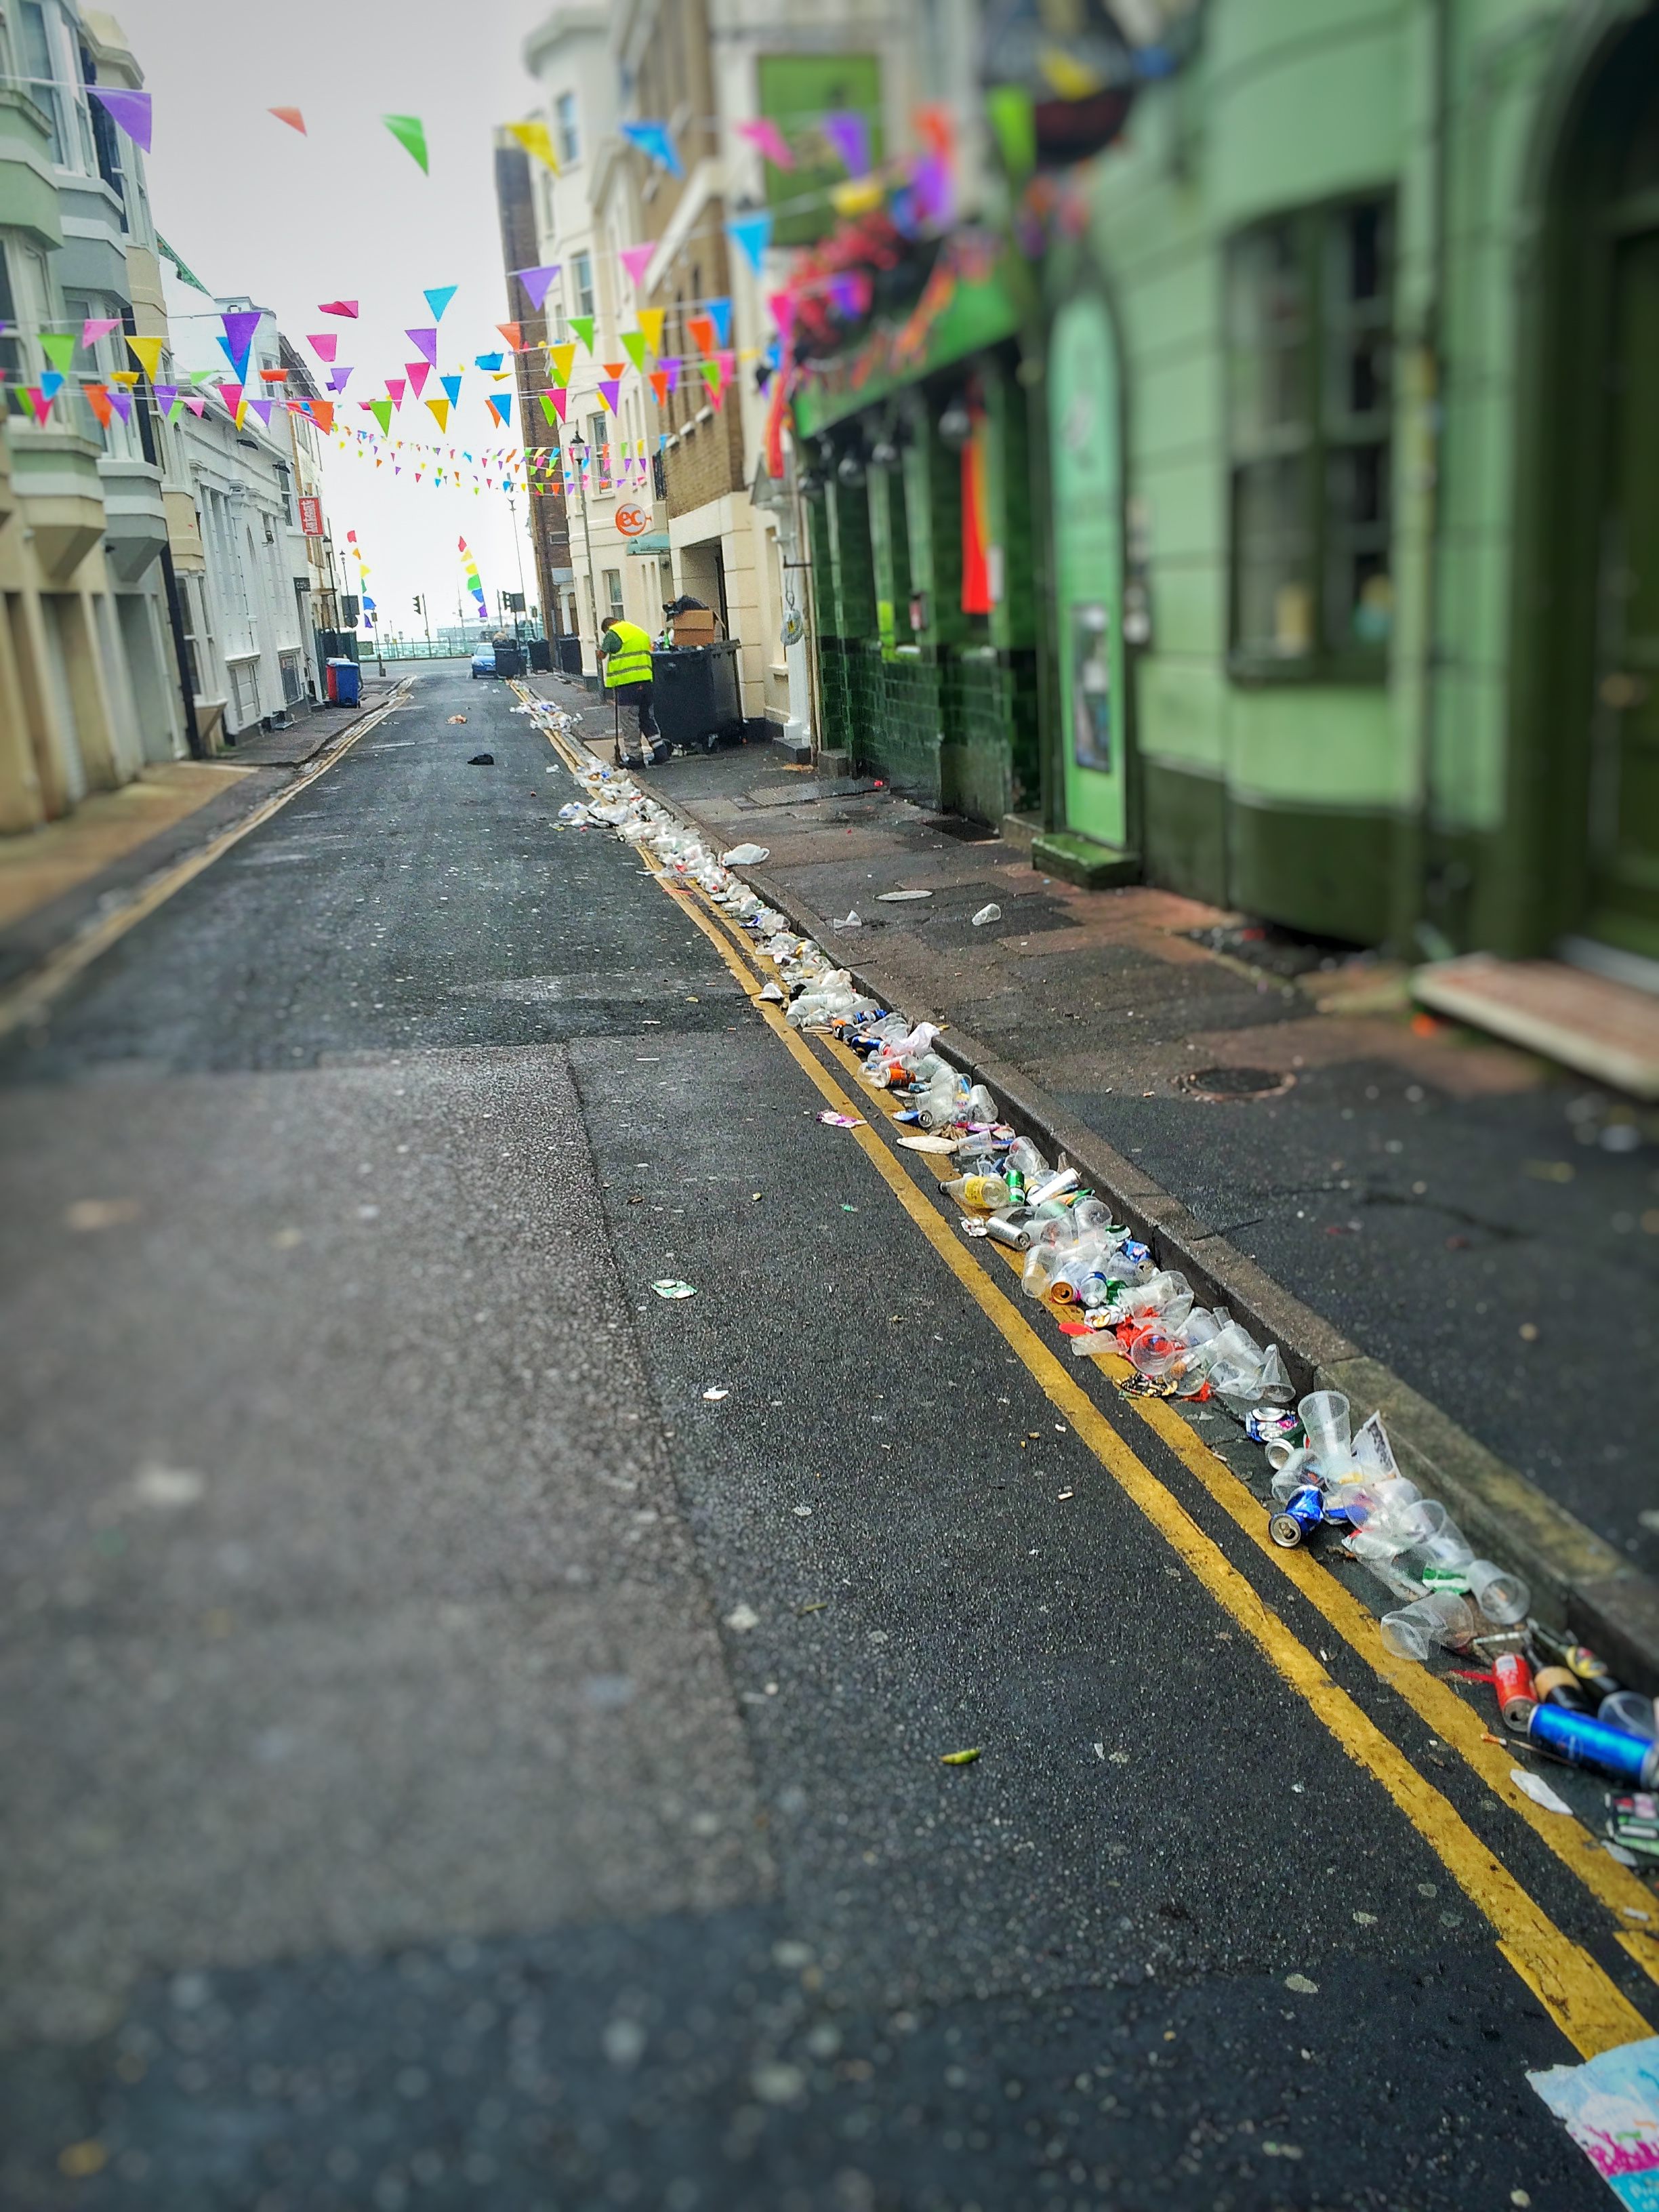 BRIGHTON PRIDE 2016 AFTERMATH - litter outside pub